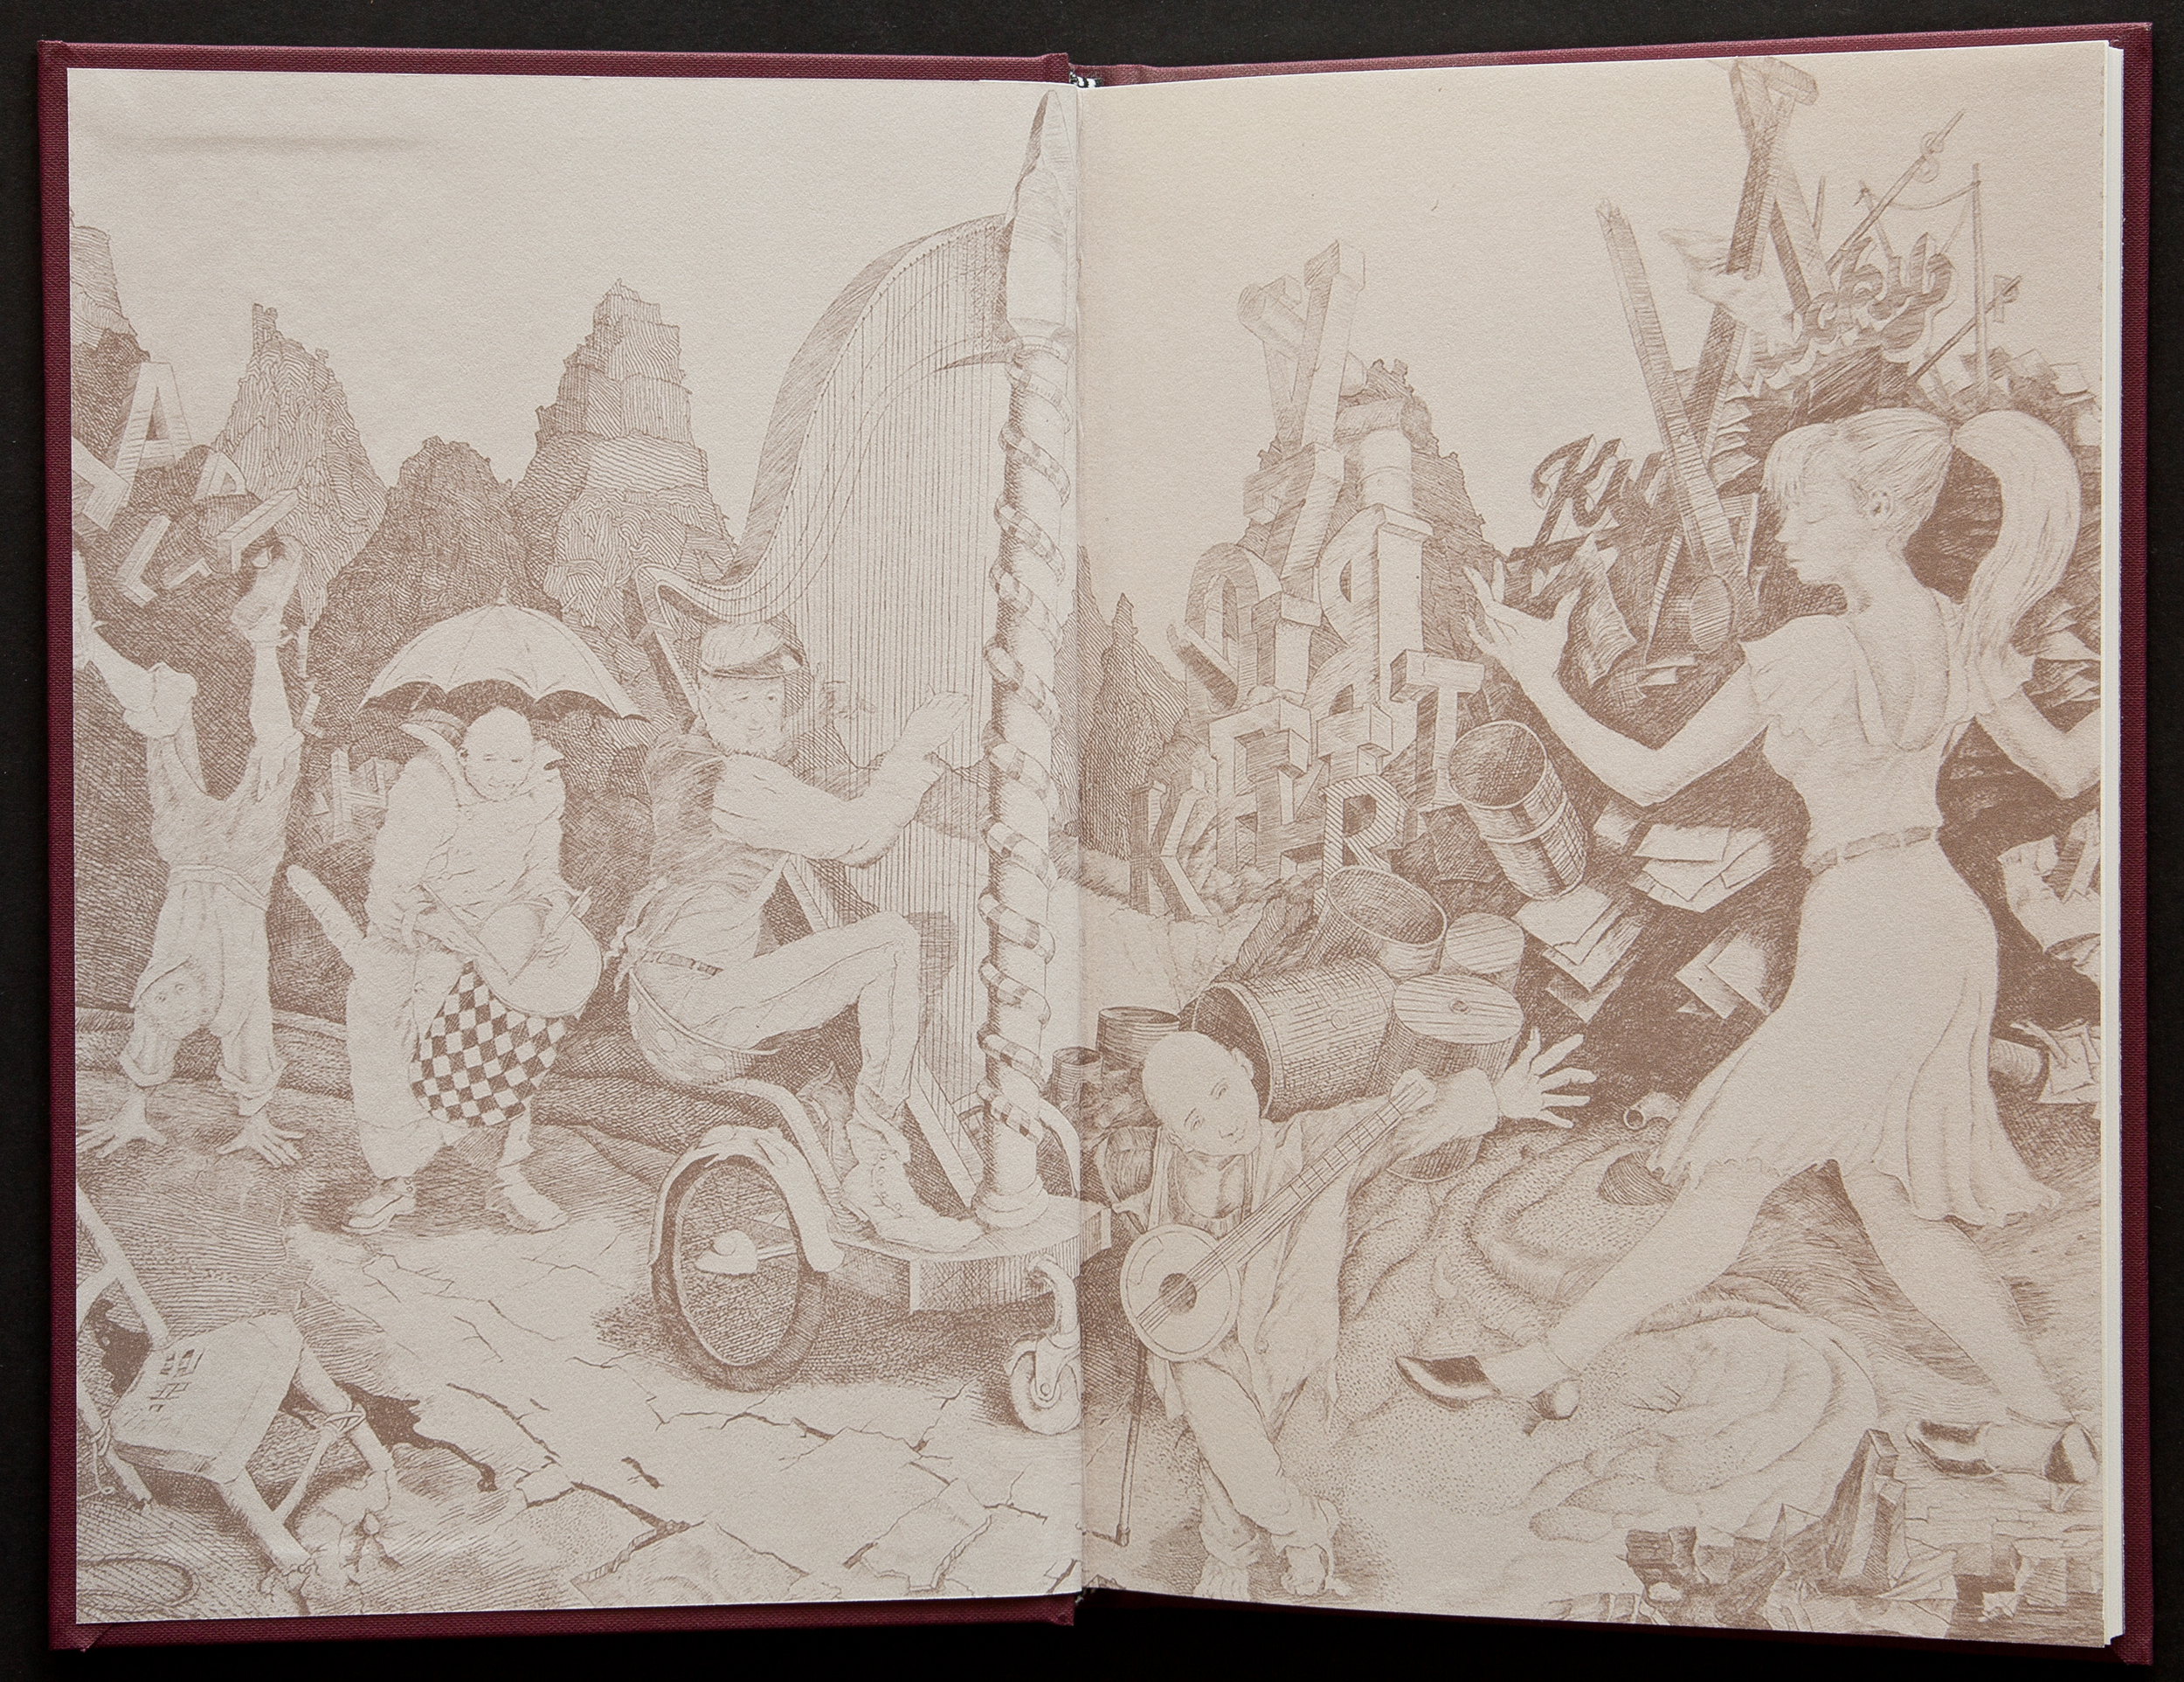 Printed endsheets for the hardcover edition was another deluxe touch . . .